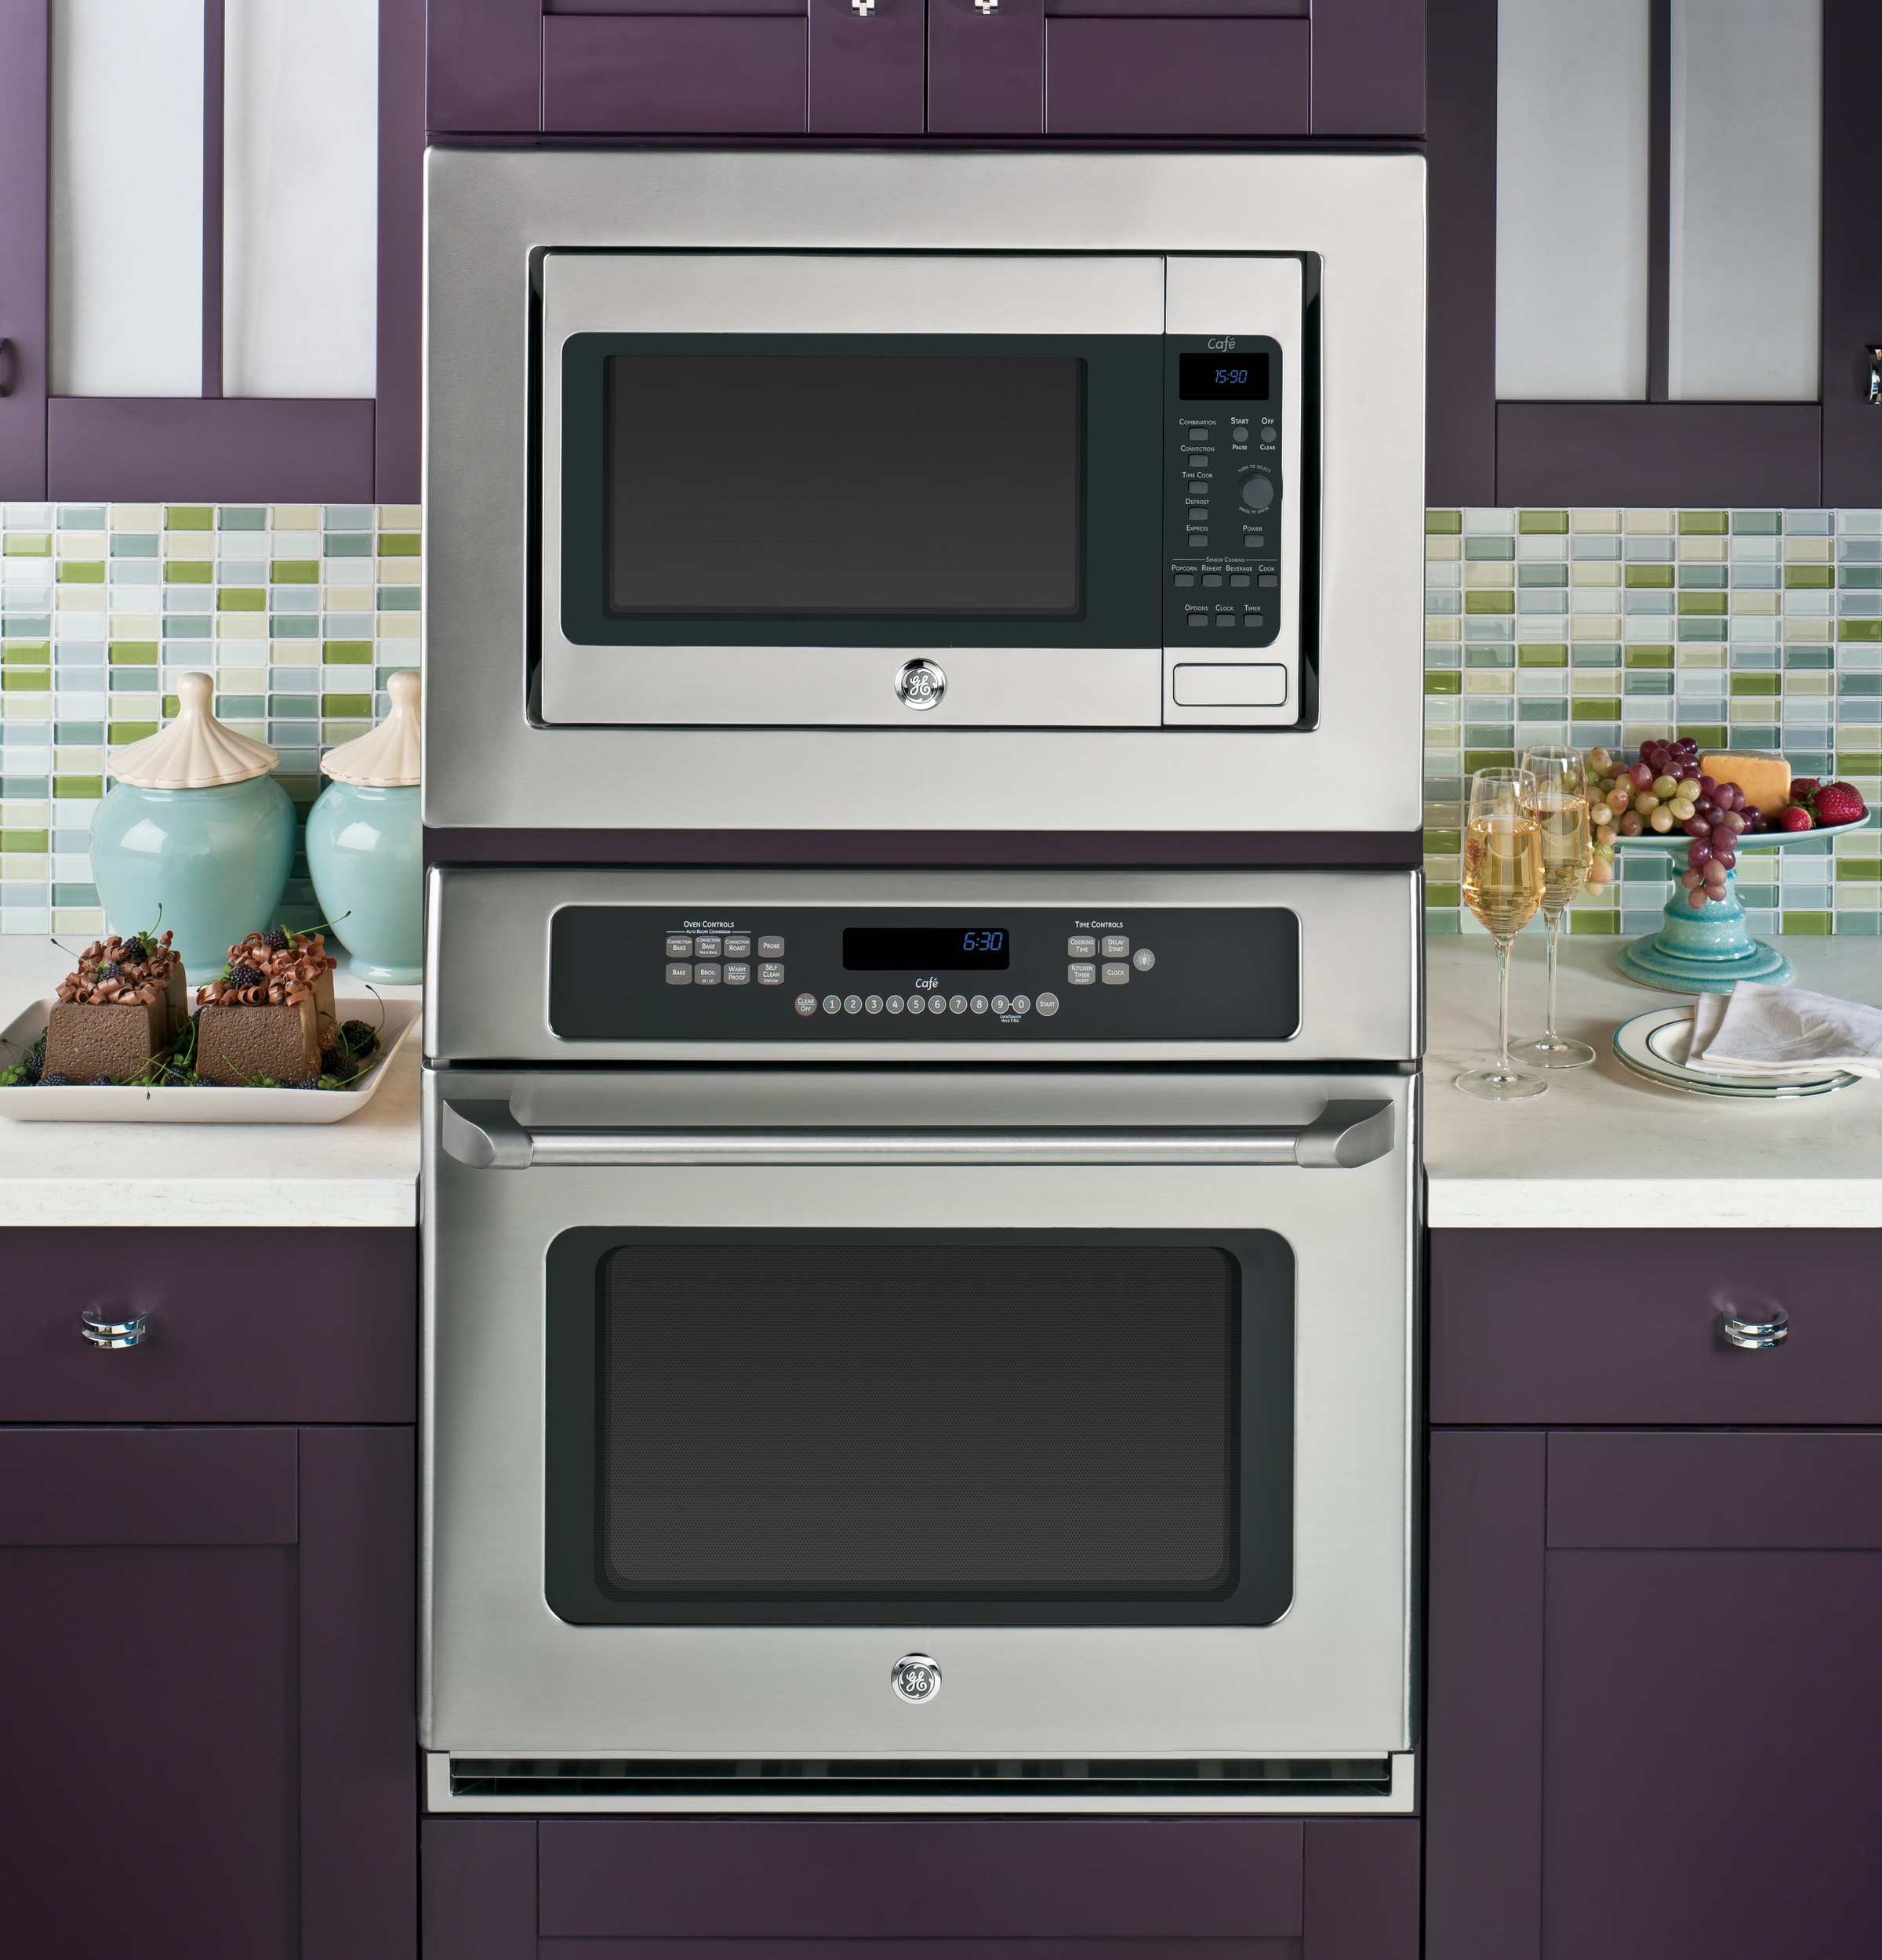 Ge Caf 233 Series 1 5 Cu Ft Countertop Convection